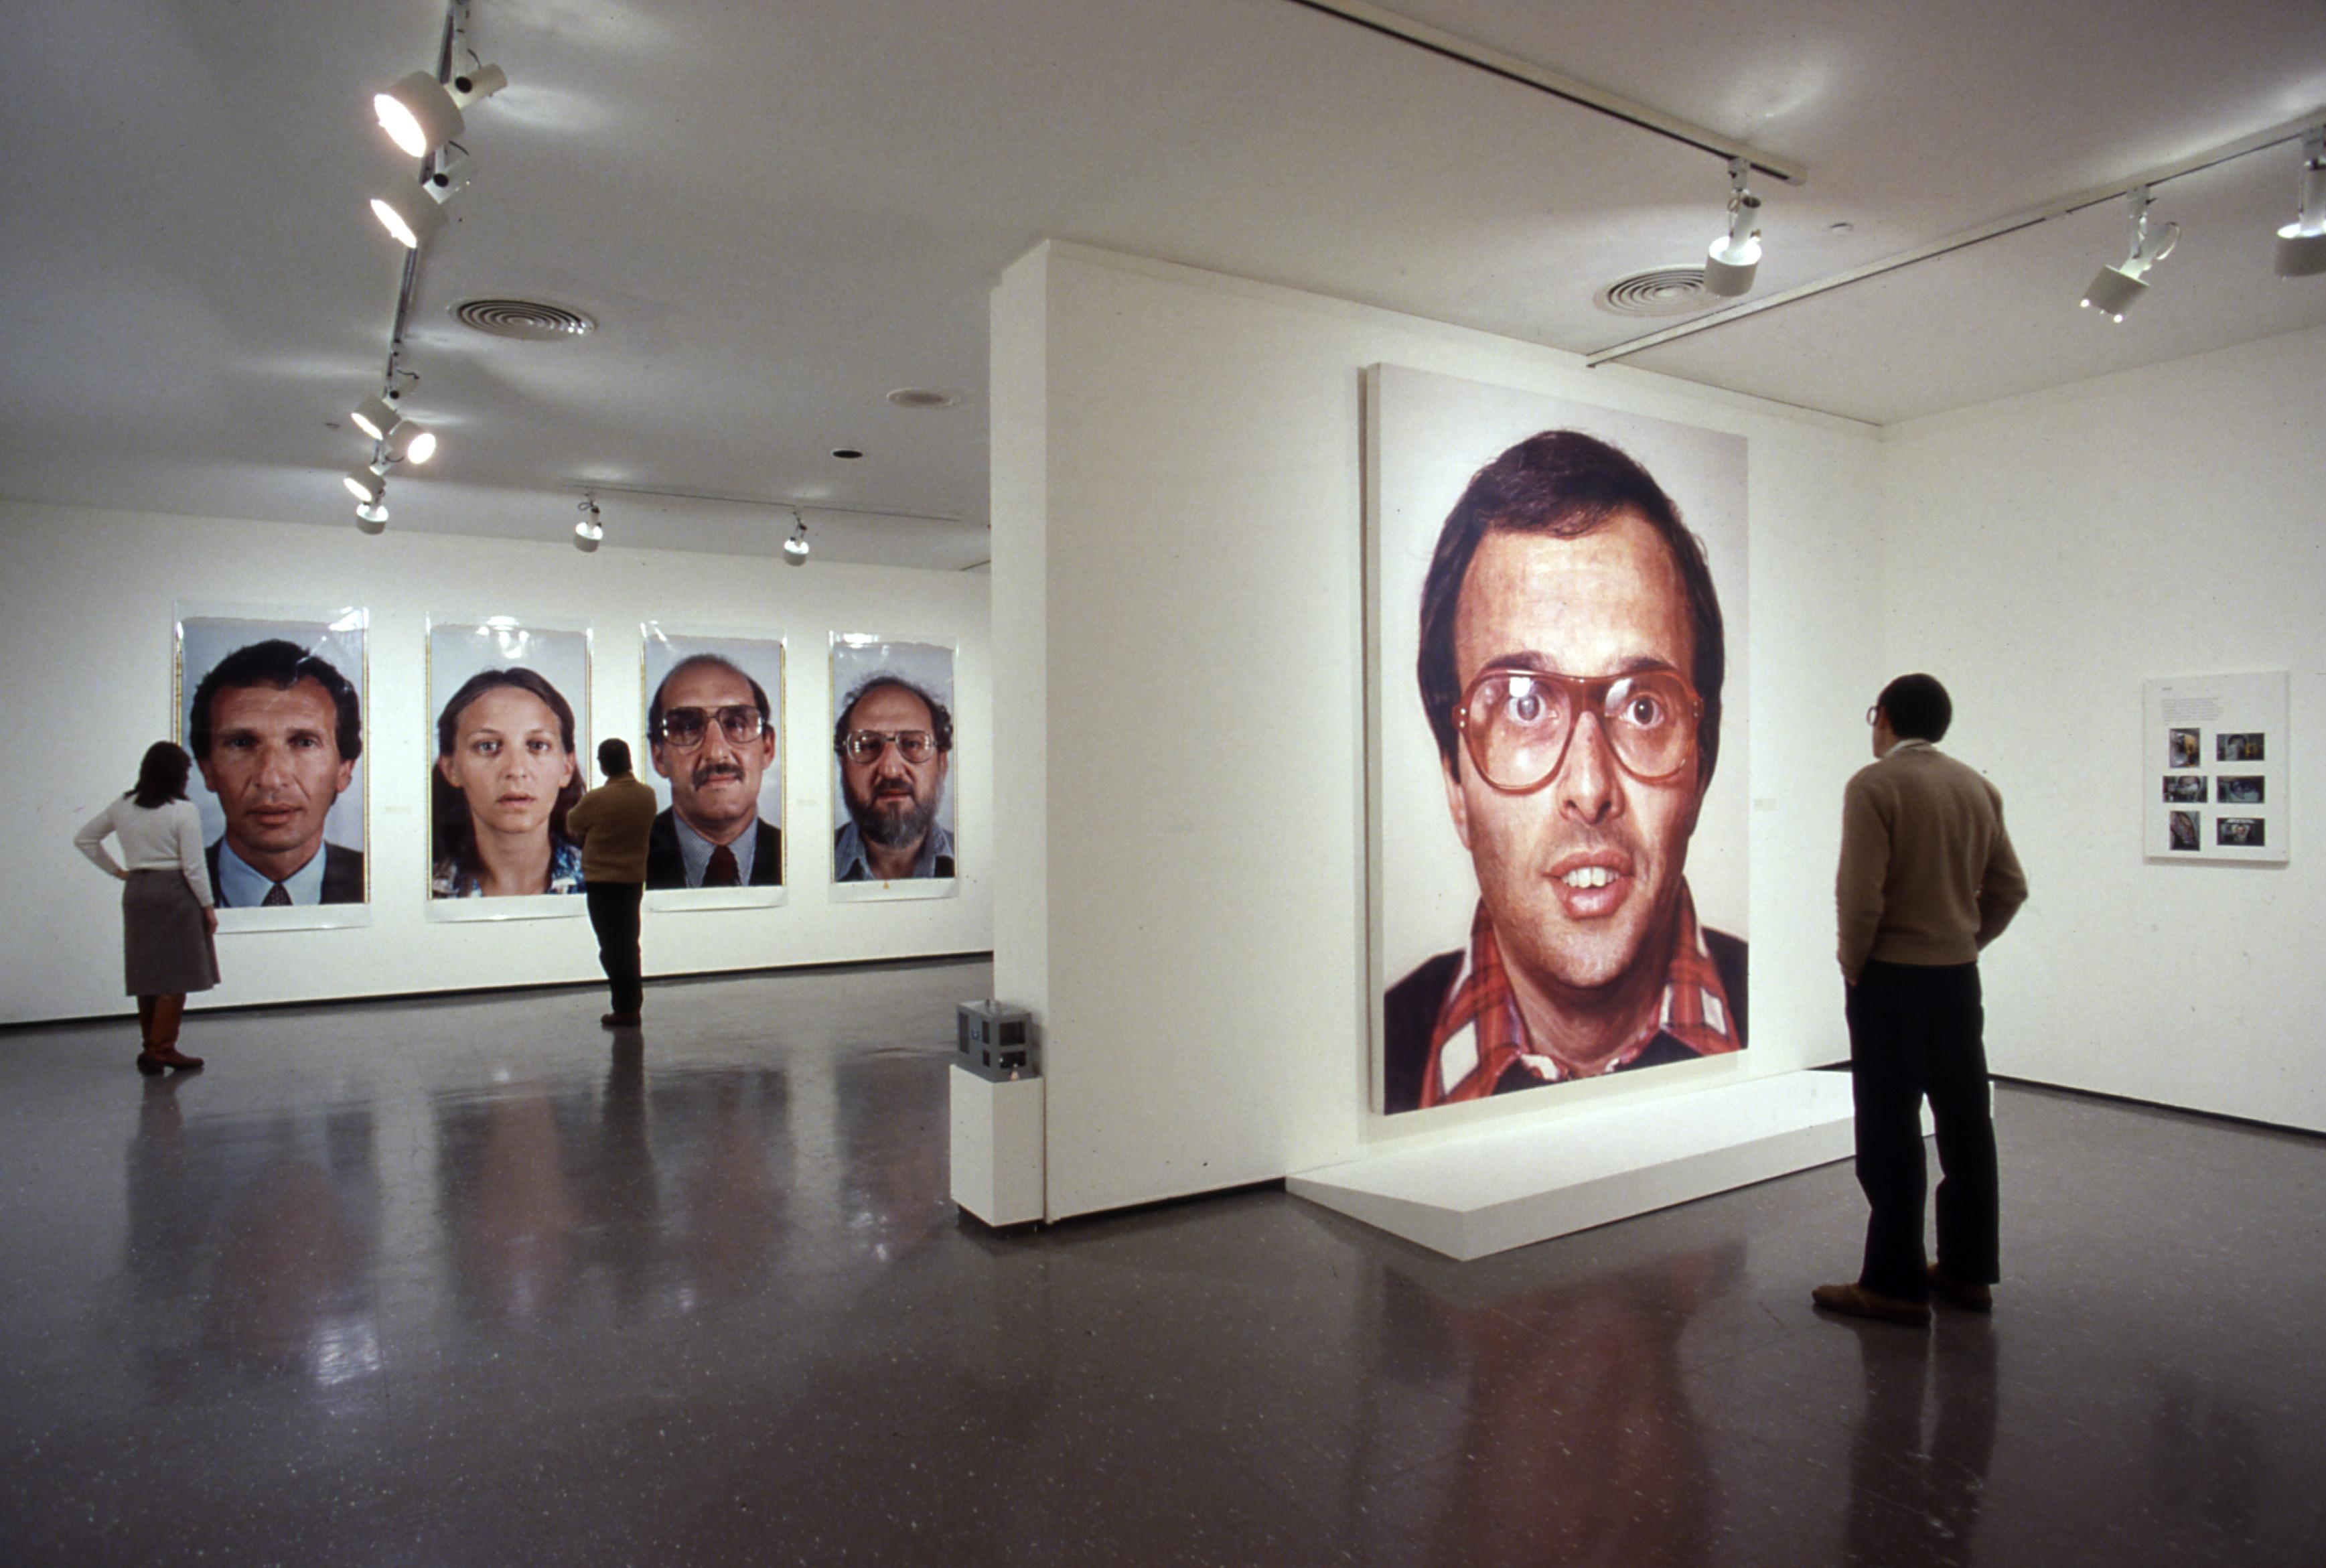 A gallery installation shows people viewing large-scale portraits of faces, four in the rear and one in the foreground.